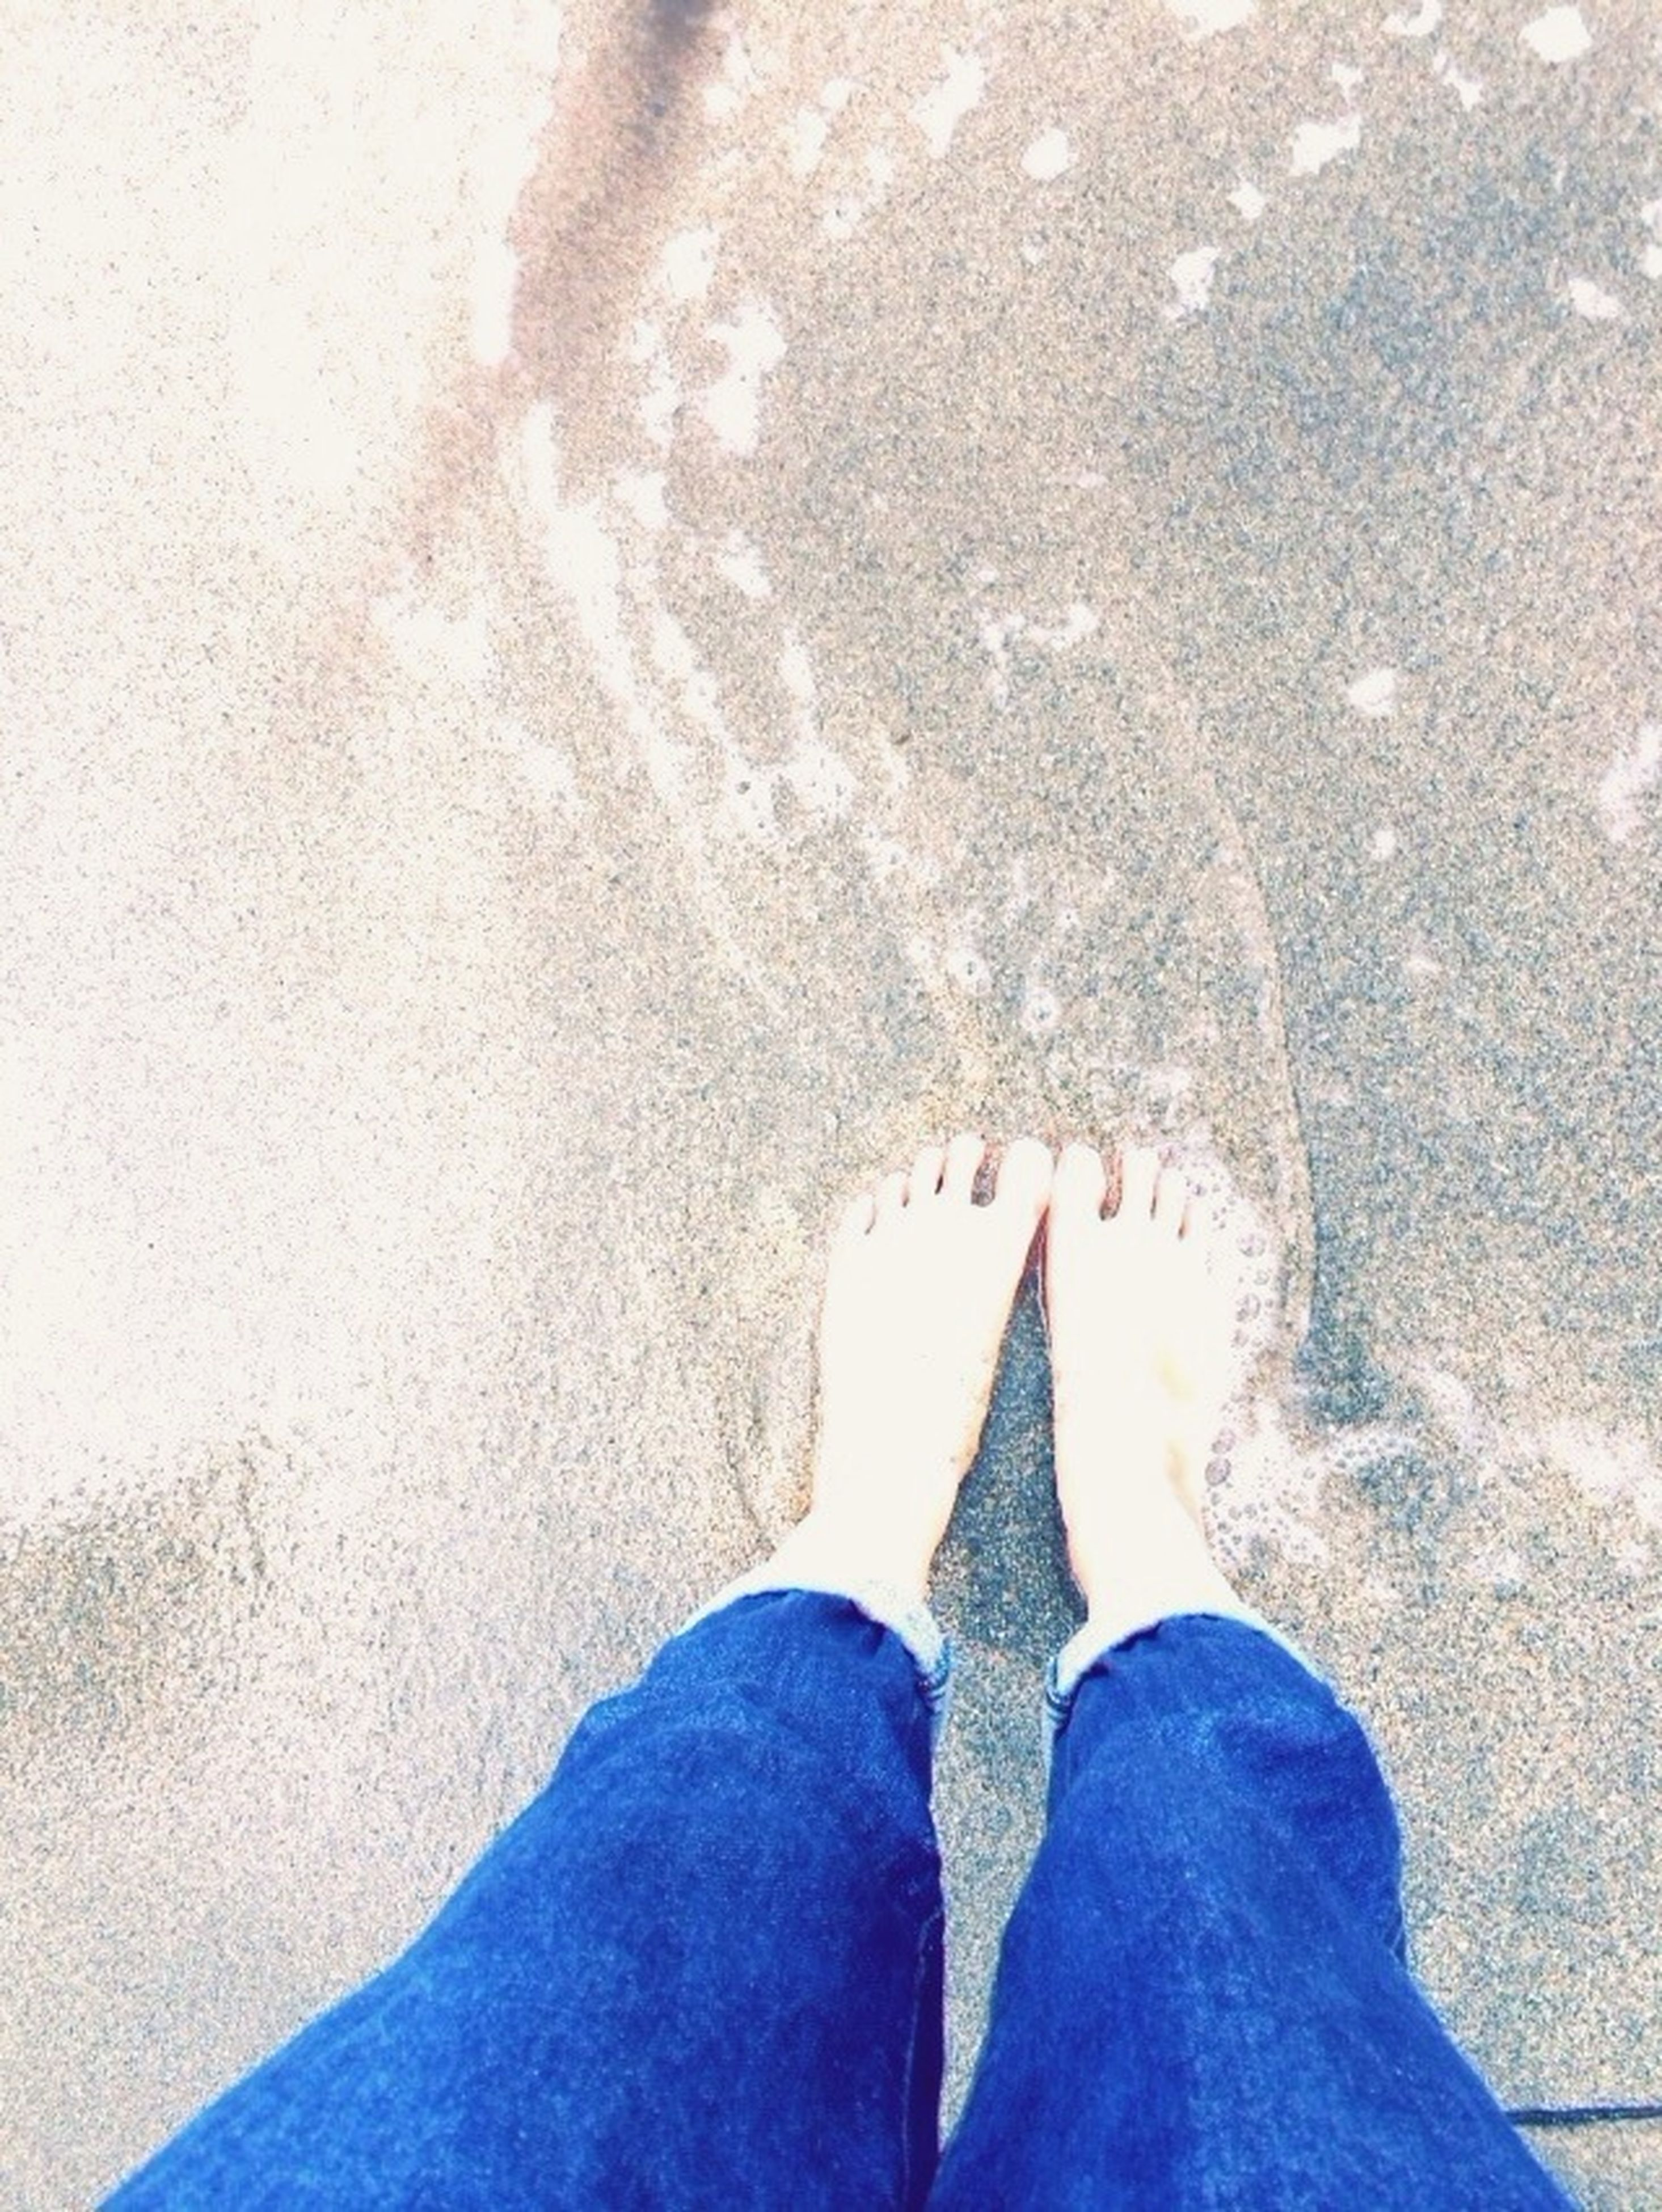 low section, person, personal perspective, shoe, standing, human foot, high angle view, lifestyles, jeans, unrecognizable person, leisure activity, close-up, men, outdoors, part of, day, sand